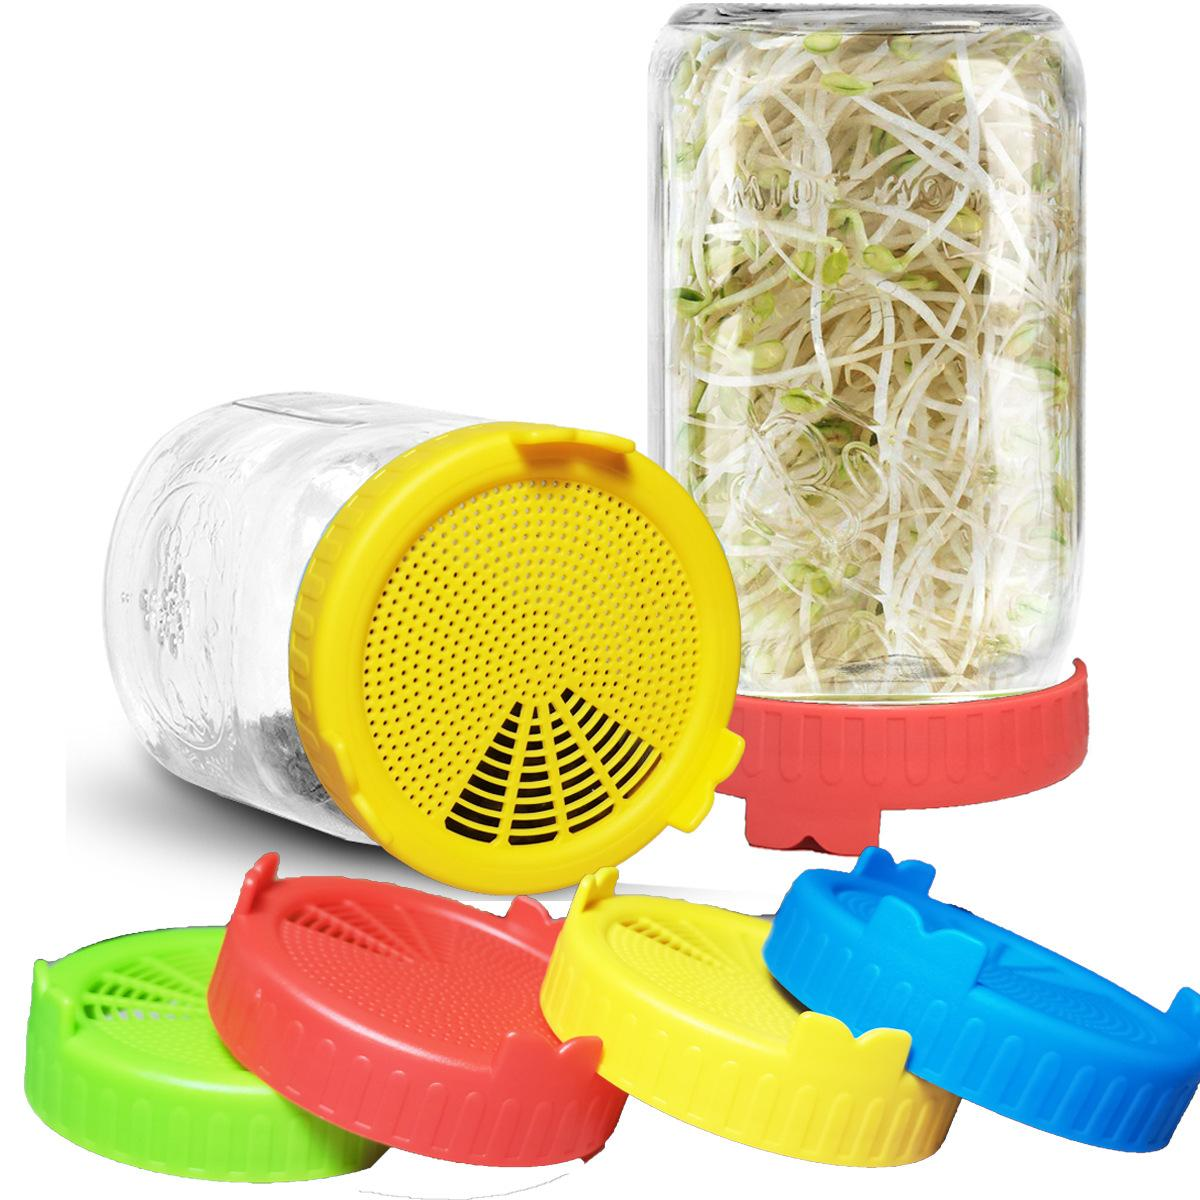 Sprouting Lid Food Grade Mesh Sprout Cover Kit Seed Growing Germination 4 or 2